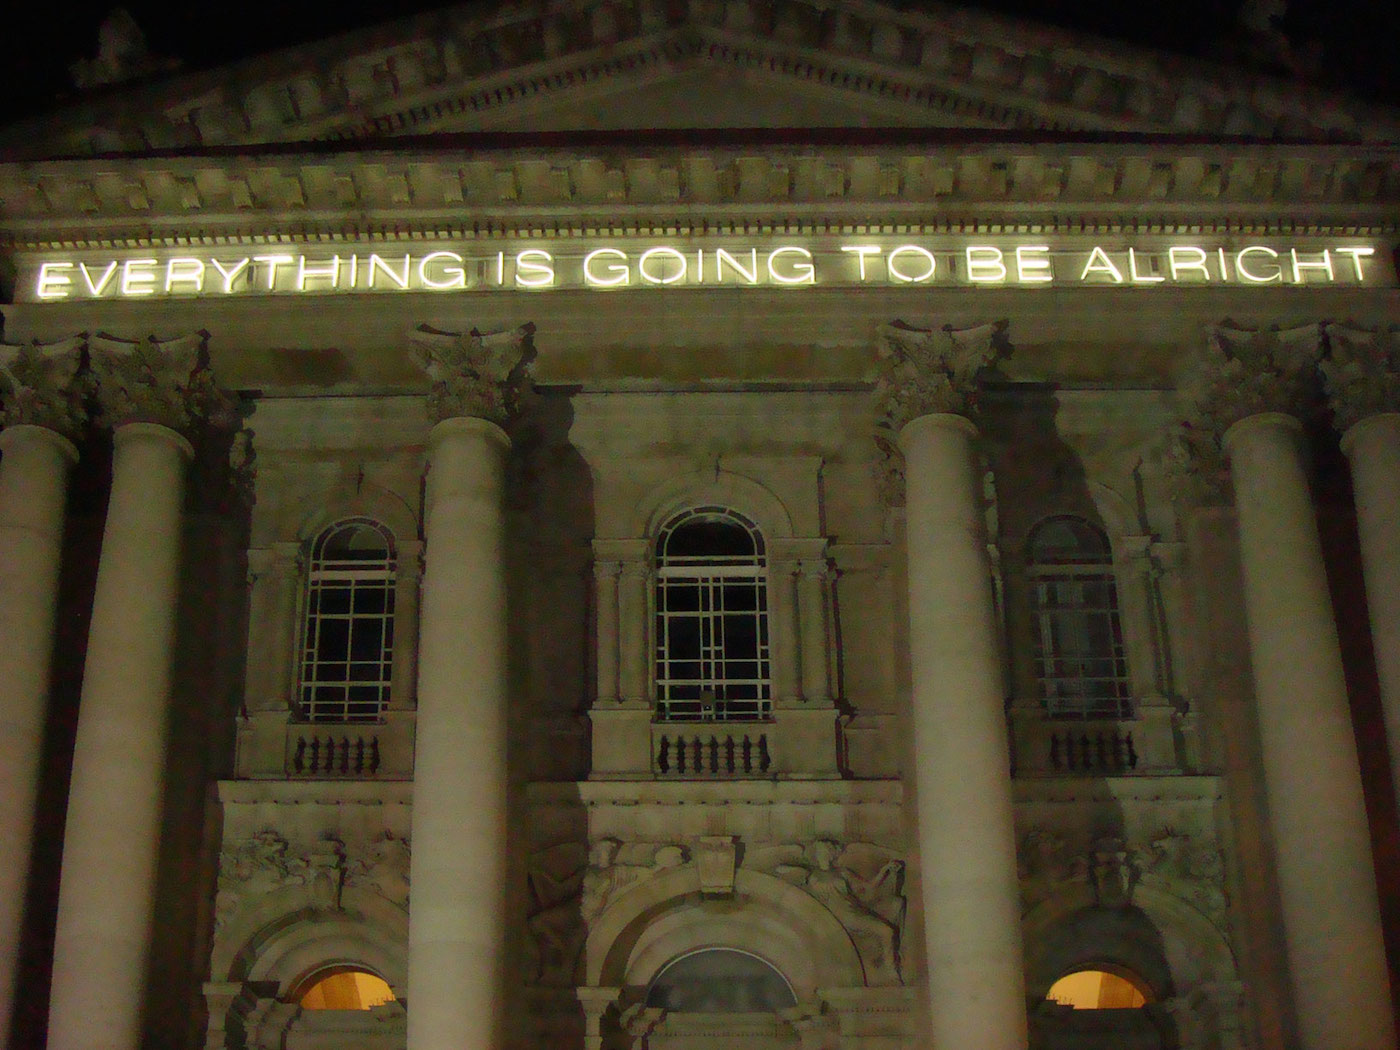 """Martin Creed, """"Work No.203: EVERYTHING IS GOING TO BE ALRIGHT"""" (1999) on the façade of Tate Britain (photo by Steve Wilde/Flickr)"""